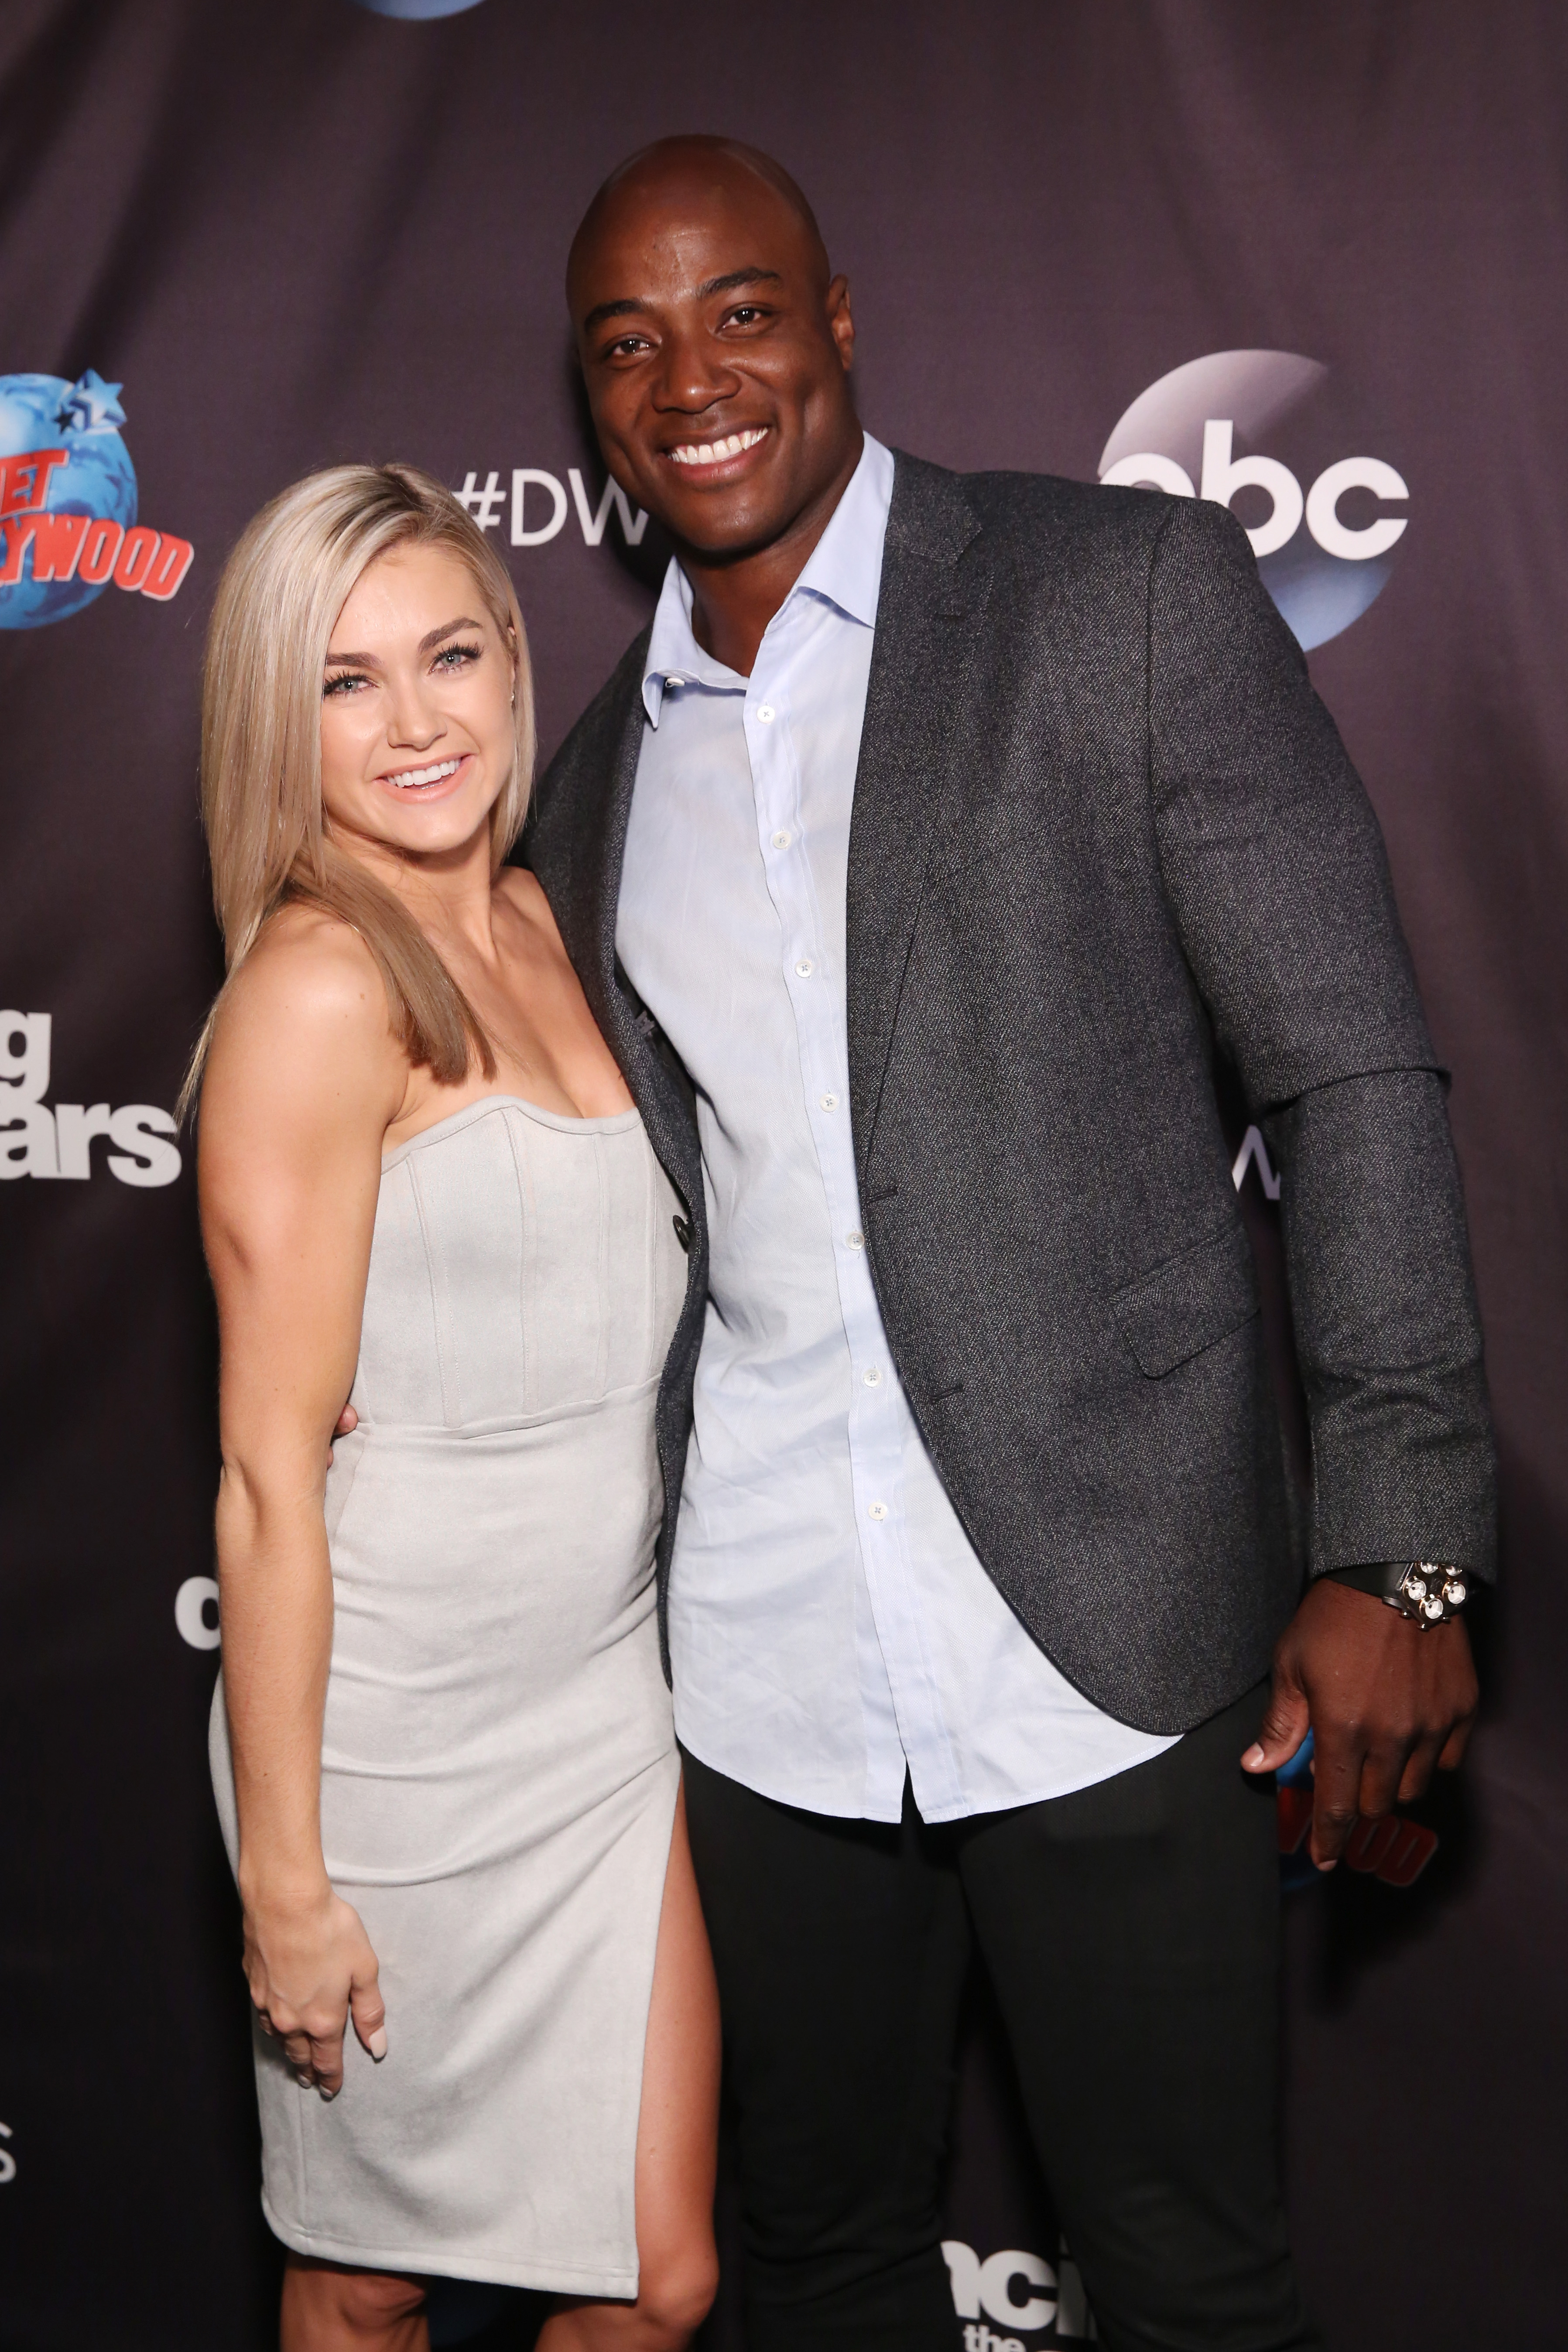 Lindsay Arnold and DeMarcus Ware attend Dancing With The Stars Season 27 Cast Reveal Red Carpet At Planet Hollywood Times Square at Planet Hollywood Times Square on September 12, 2018 in New York City.